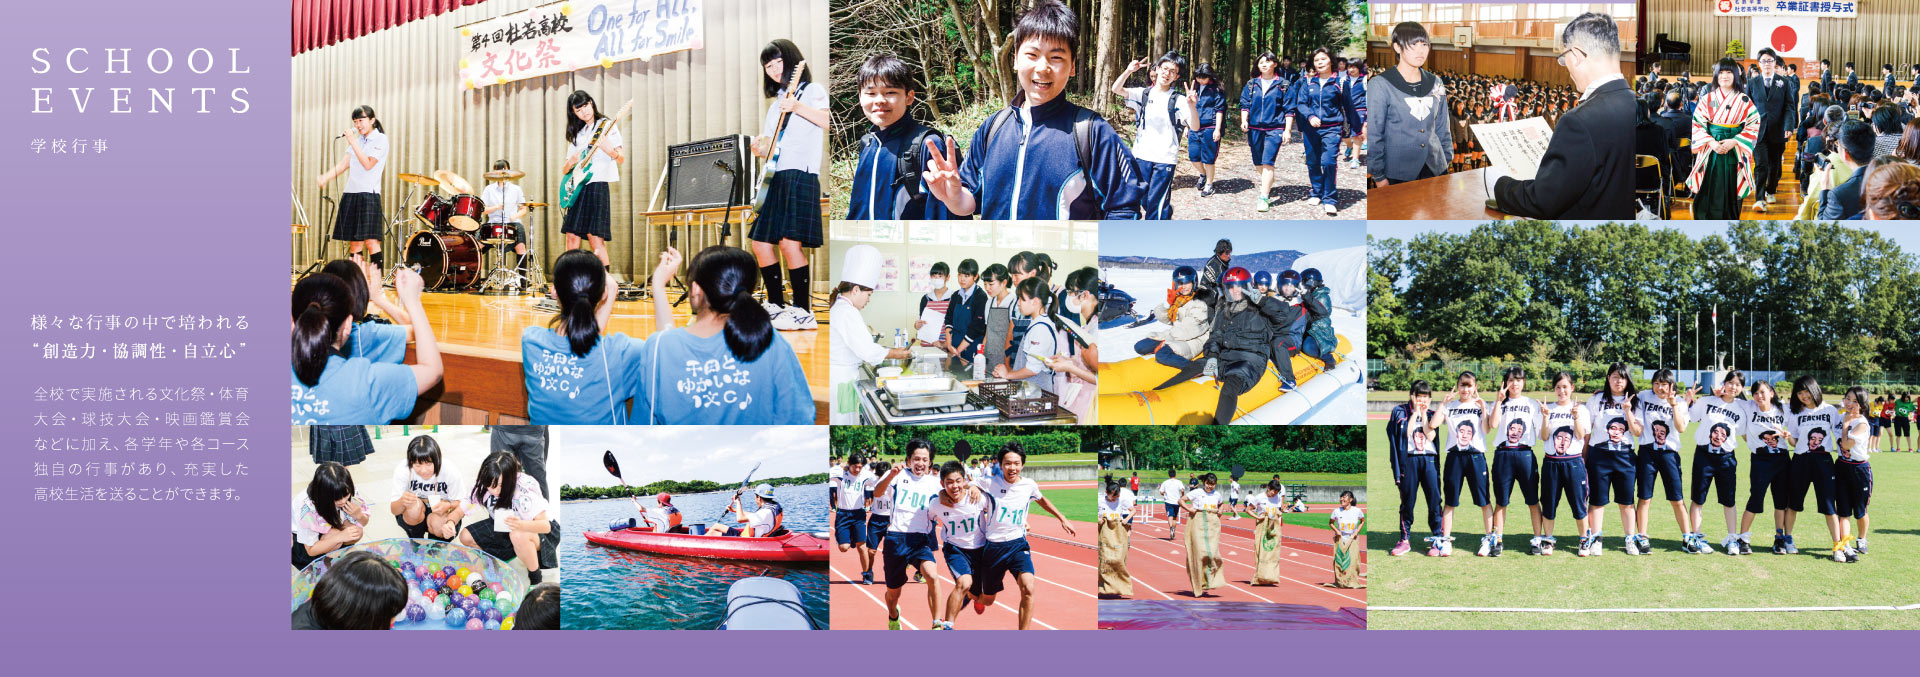 SCHOOL EVENTS 学校行事